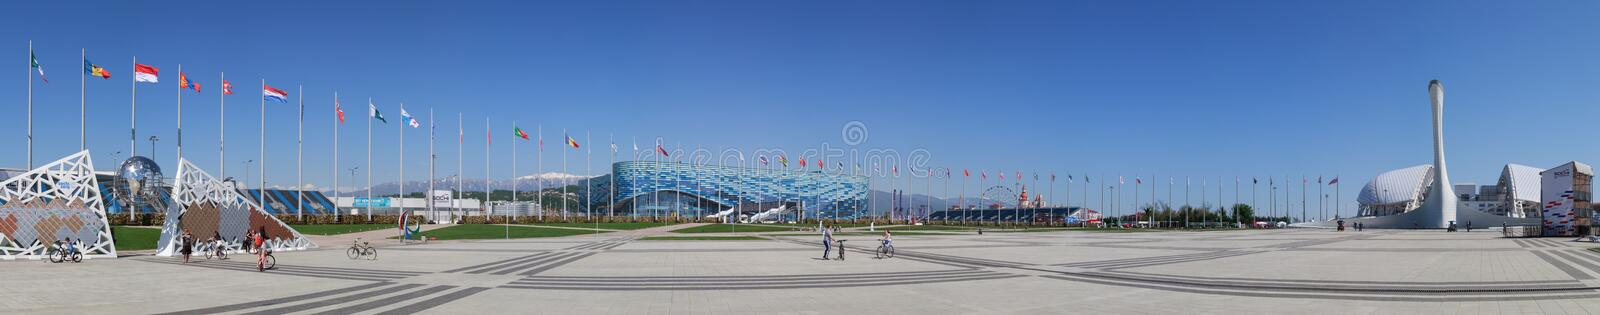 Panorama overlooking the wall of champions of the XXII Olympic and Paralympic Games, the Iceberg Skating Palace, the Fisht Stadium royalty free stock photo